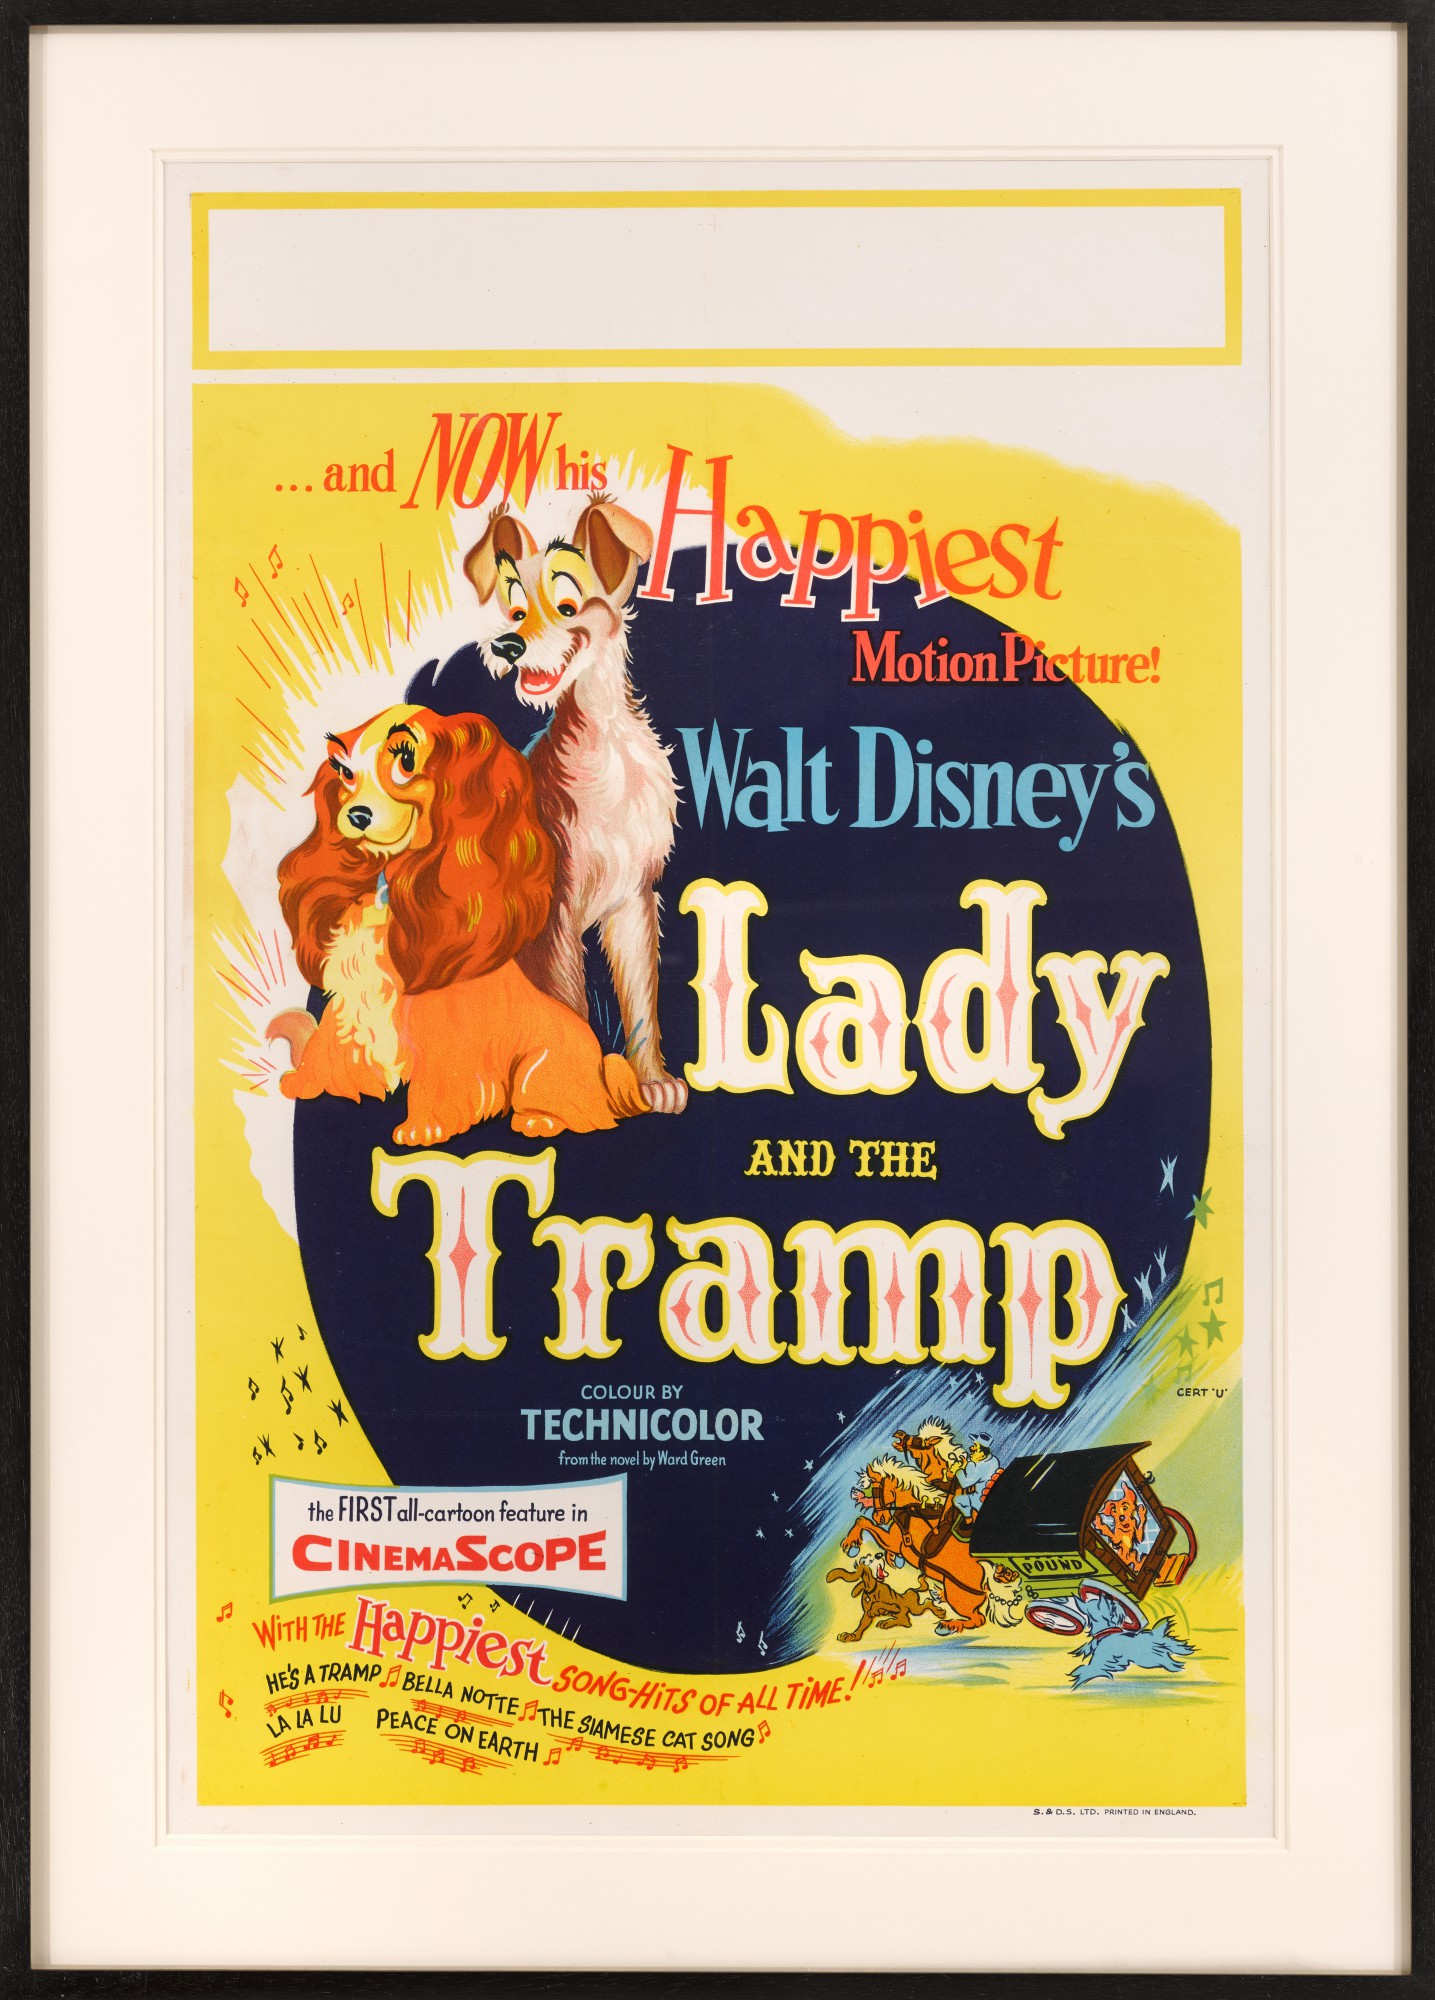 Lady And The Tramp 1955 Poster British Original Film Posters Online Collectibles Sotheby S